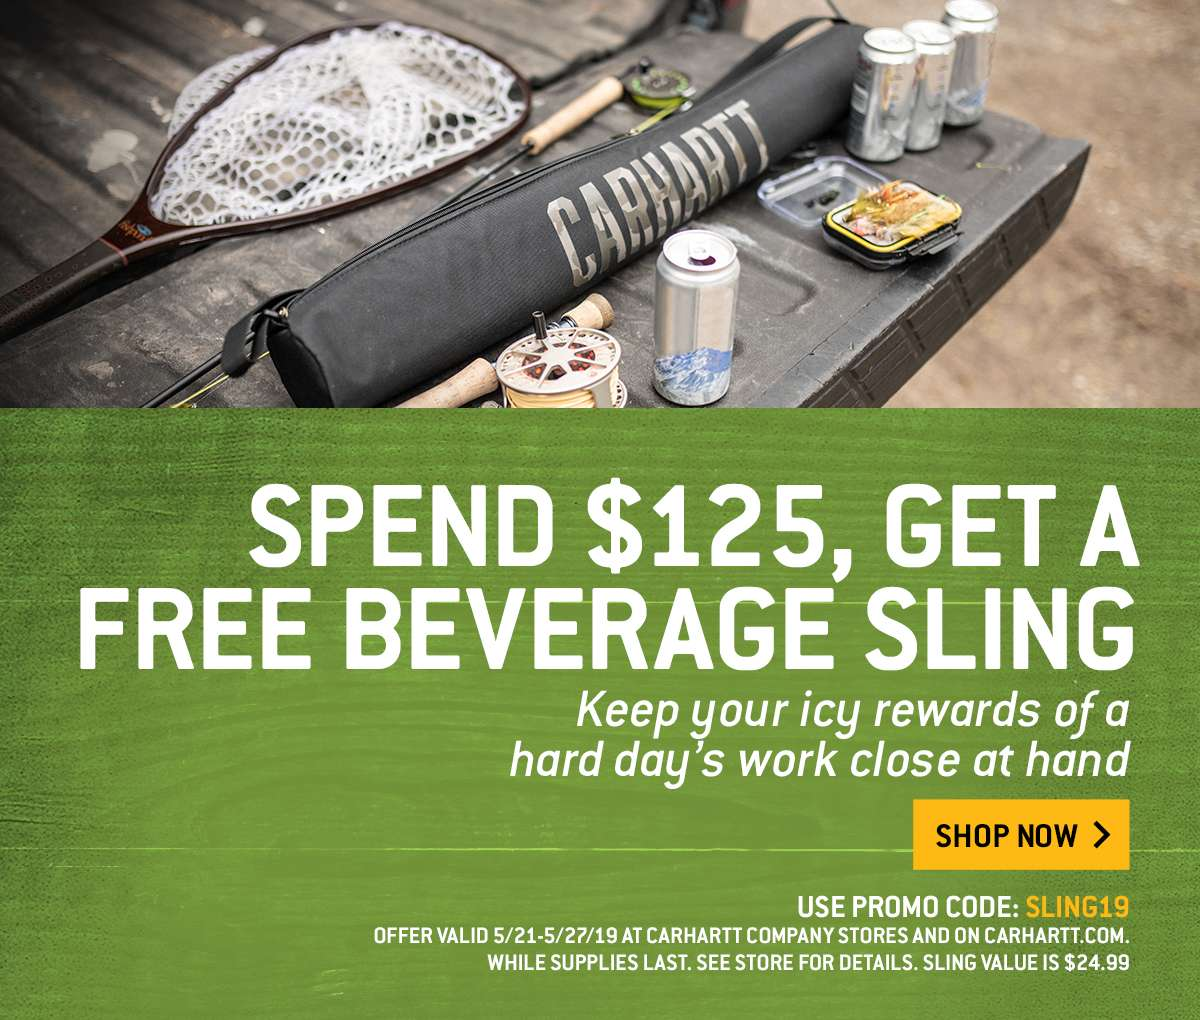 668101a5a16 Get a free beverage sling and some new Carhartt gear - Carhartt.com Email  Archive